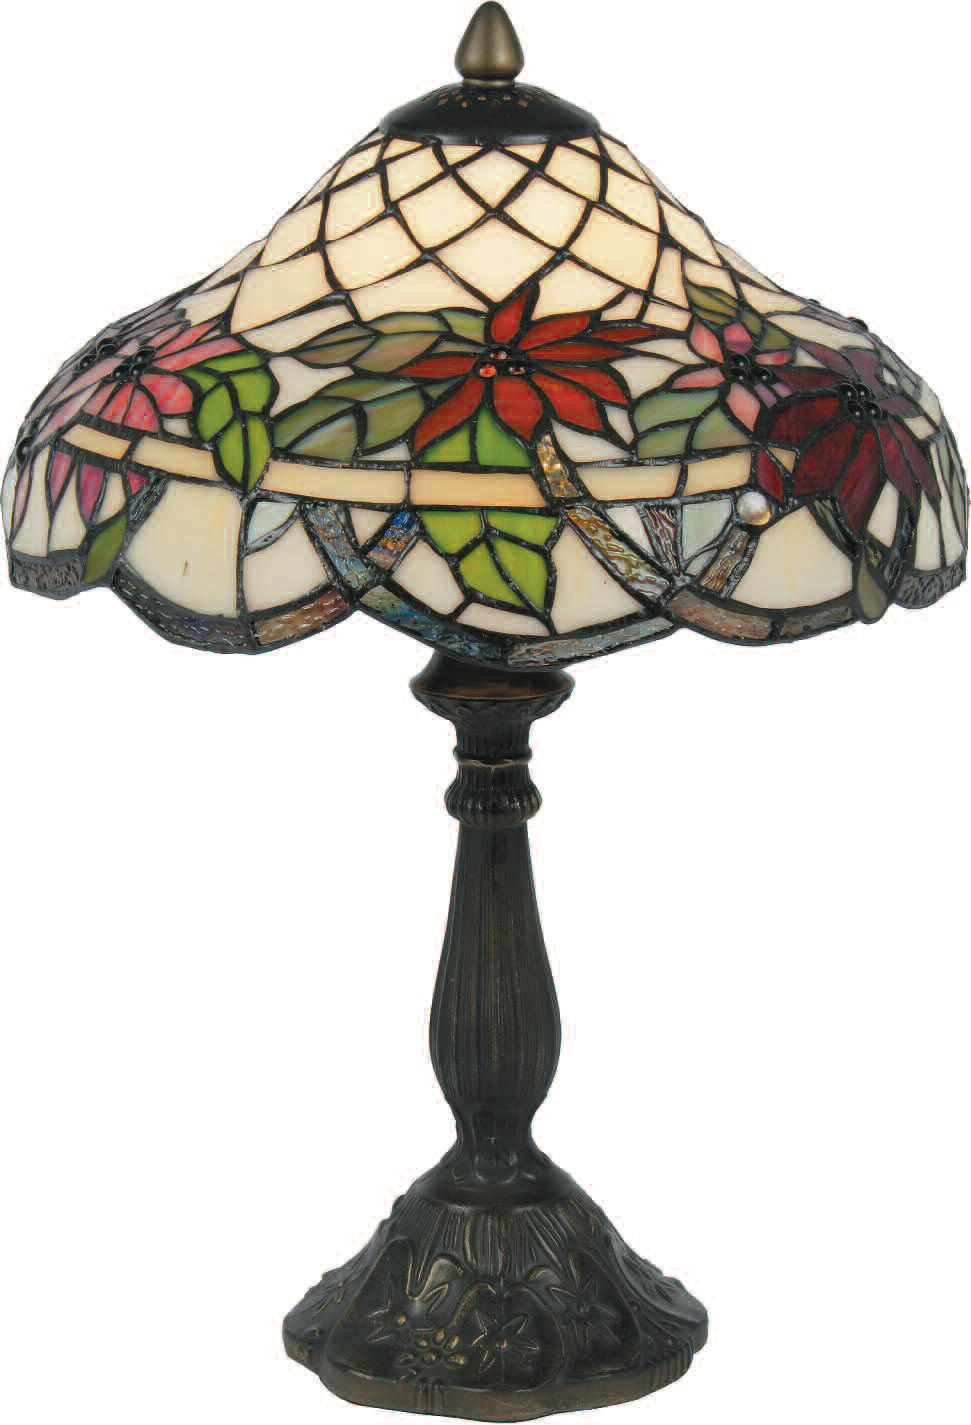 adara tiffany table lamp collection. Black Bedroom Furniture Sets. Home Design Ideas